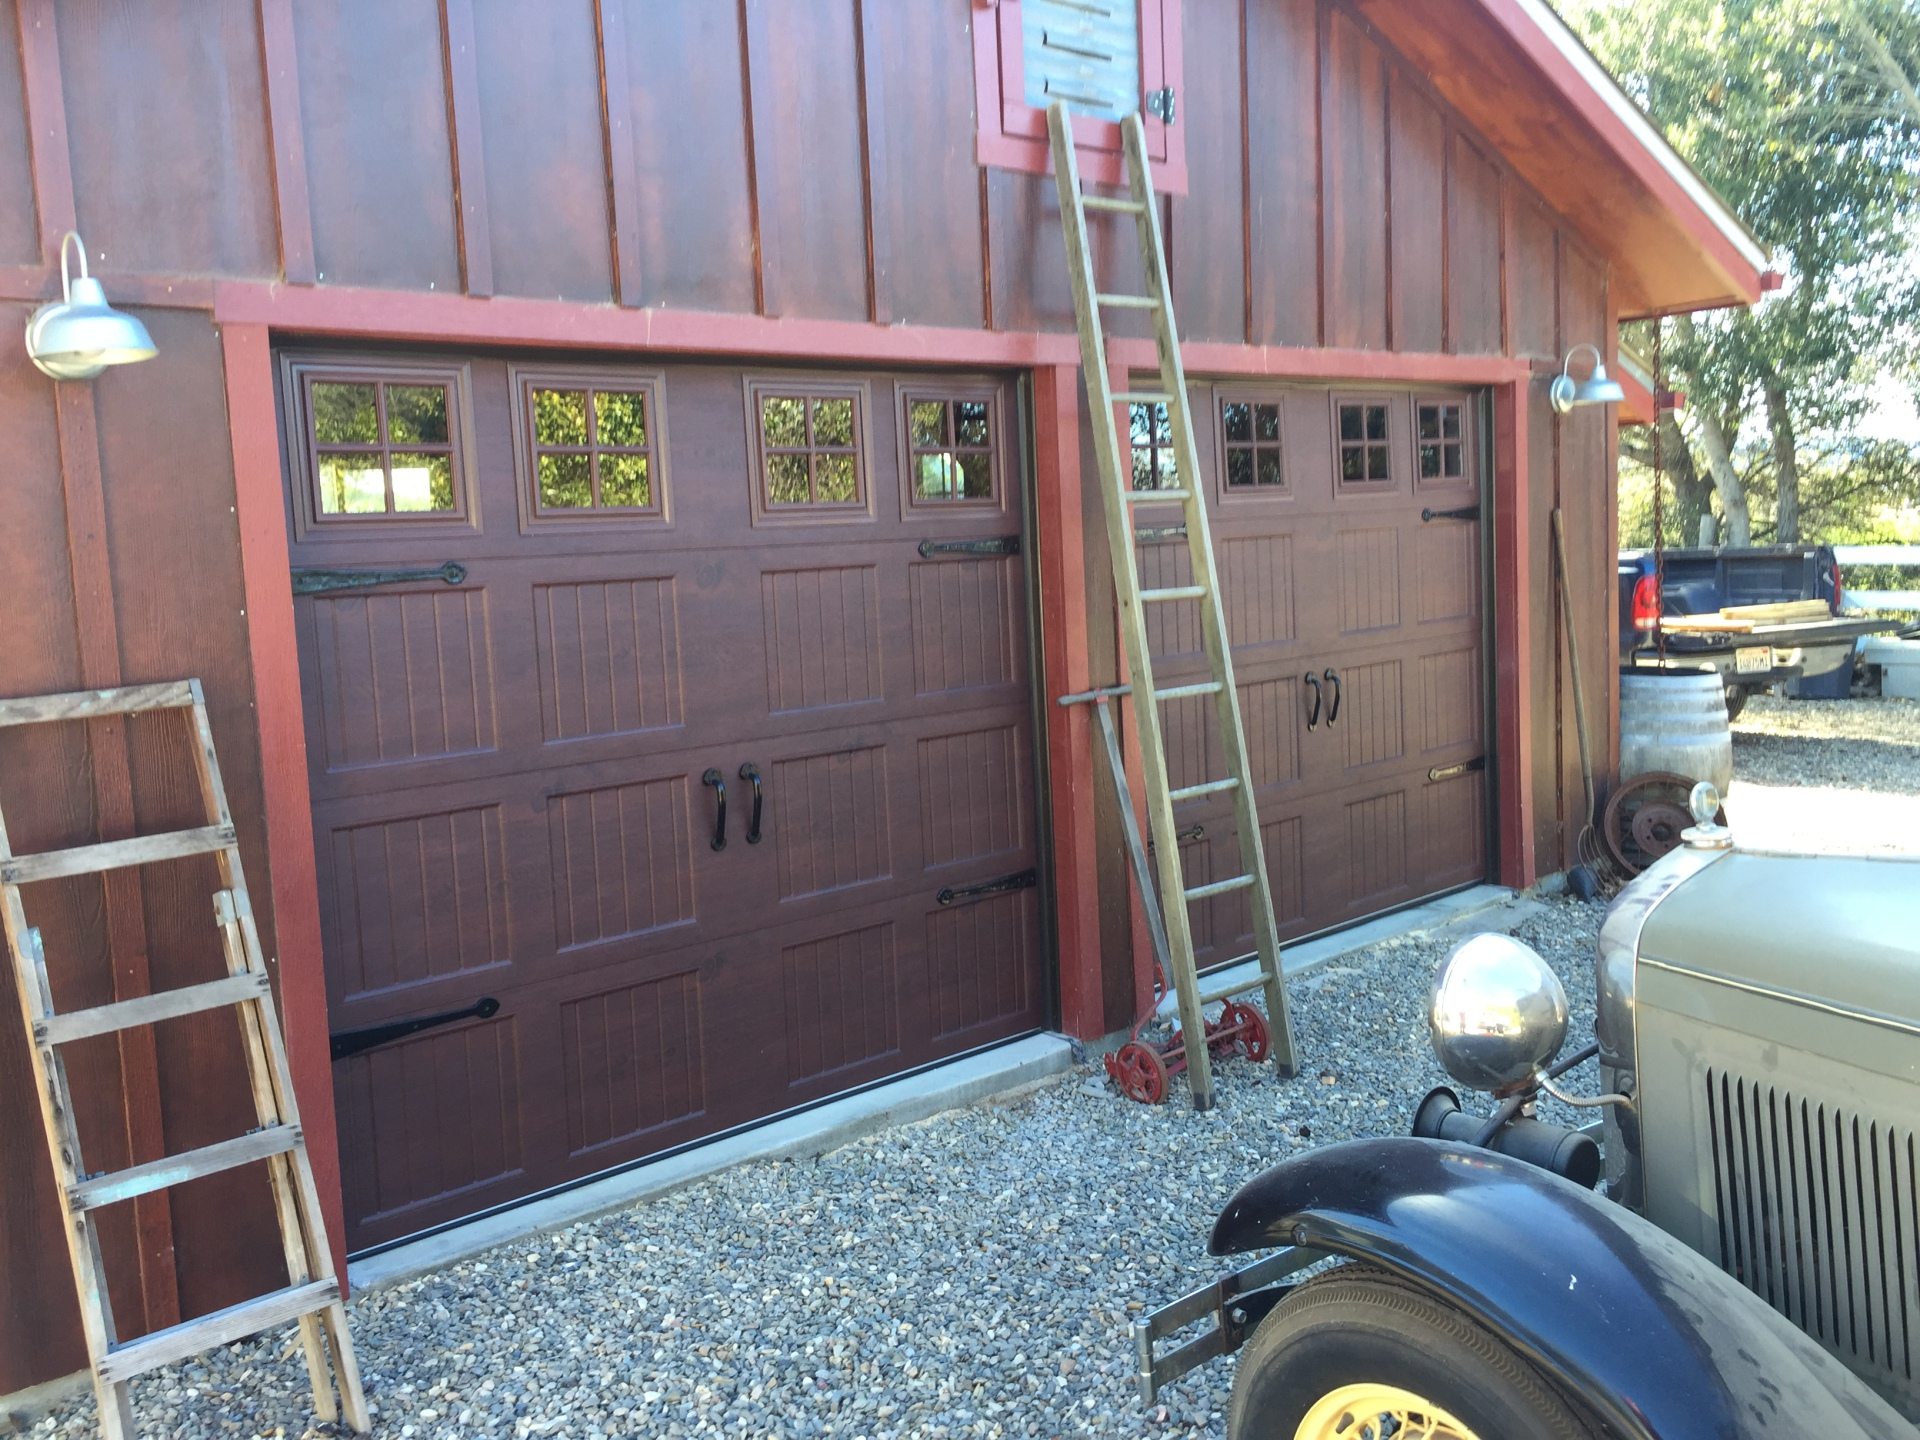 Unique Garage Door Insulated w/ Stockton windows, straps, and custom woodgrain color